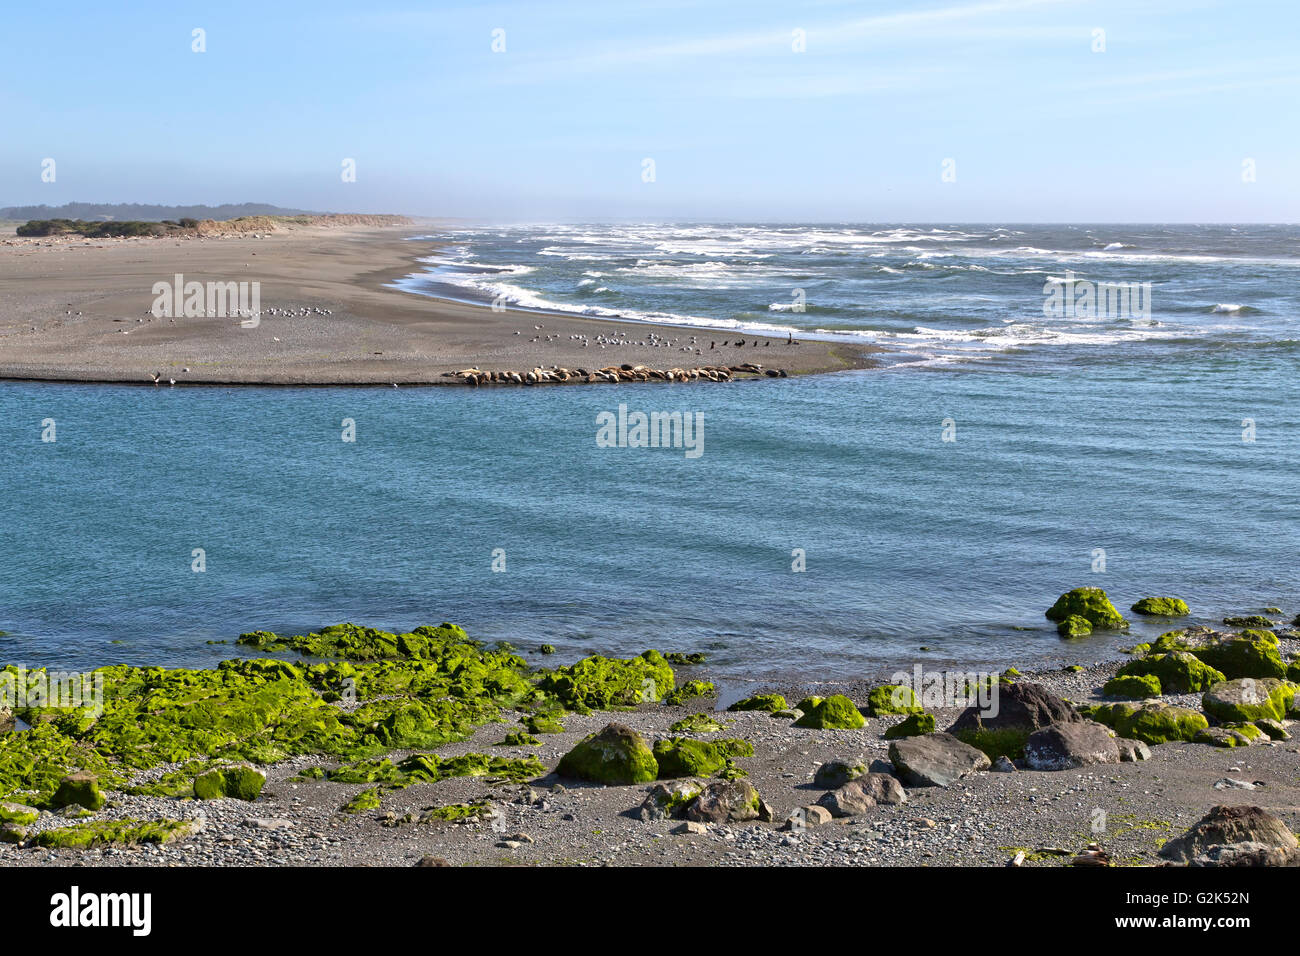 Mouth of the Smith River, Pacific ocean, harbor seals, sea lions, seagulls & double-crested cormorants resting - Stock Image